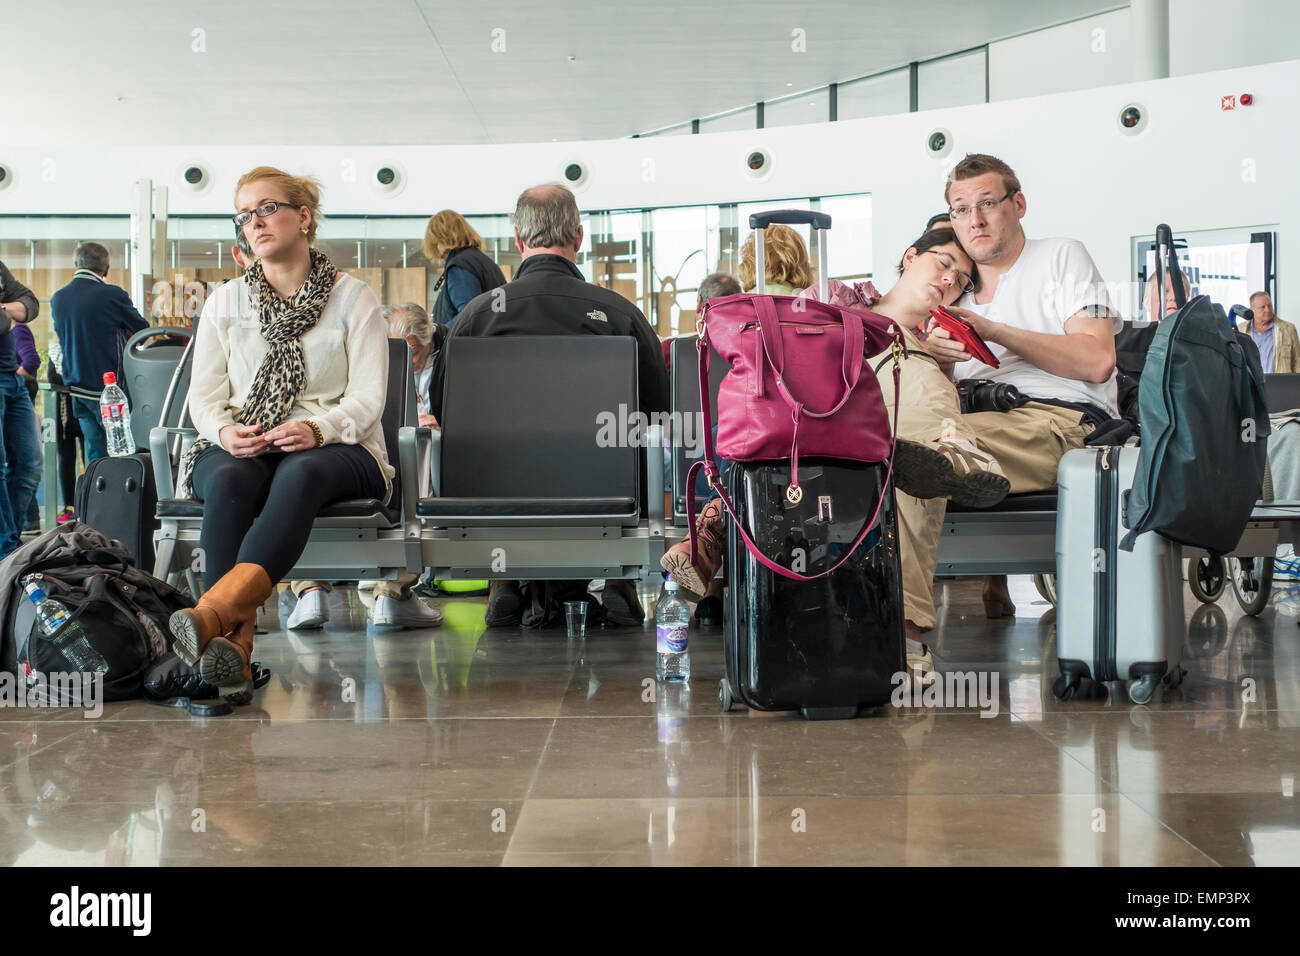 Gibraltar Airport Flight Delay Passengers in Departure Lounge - Stock Image